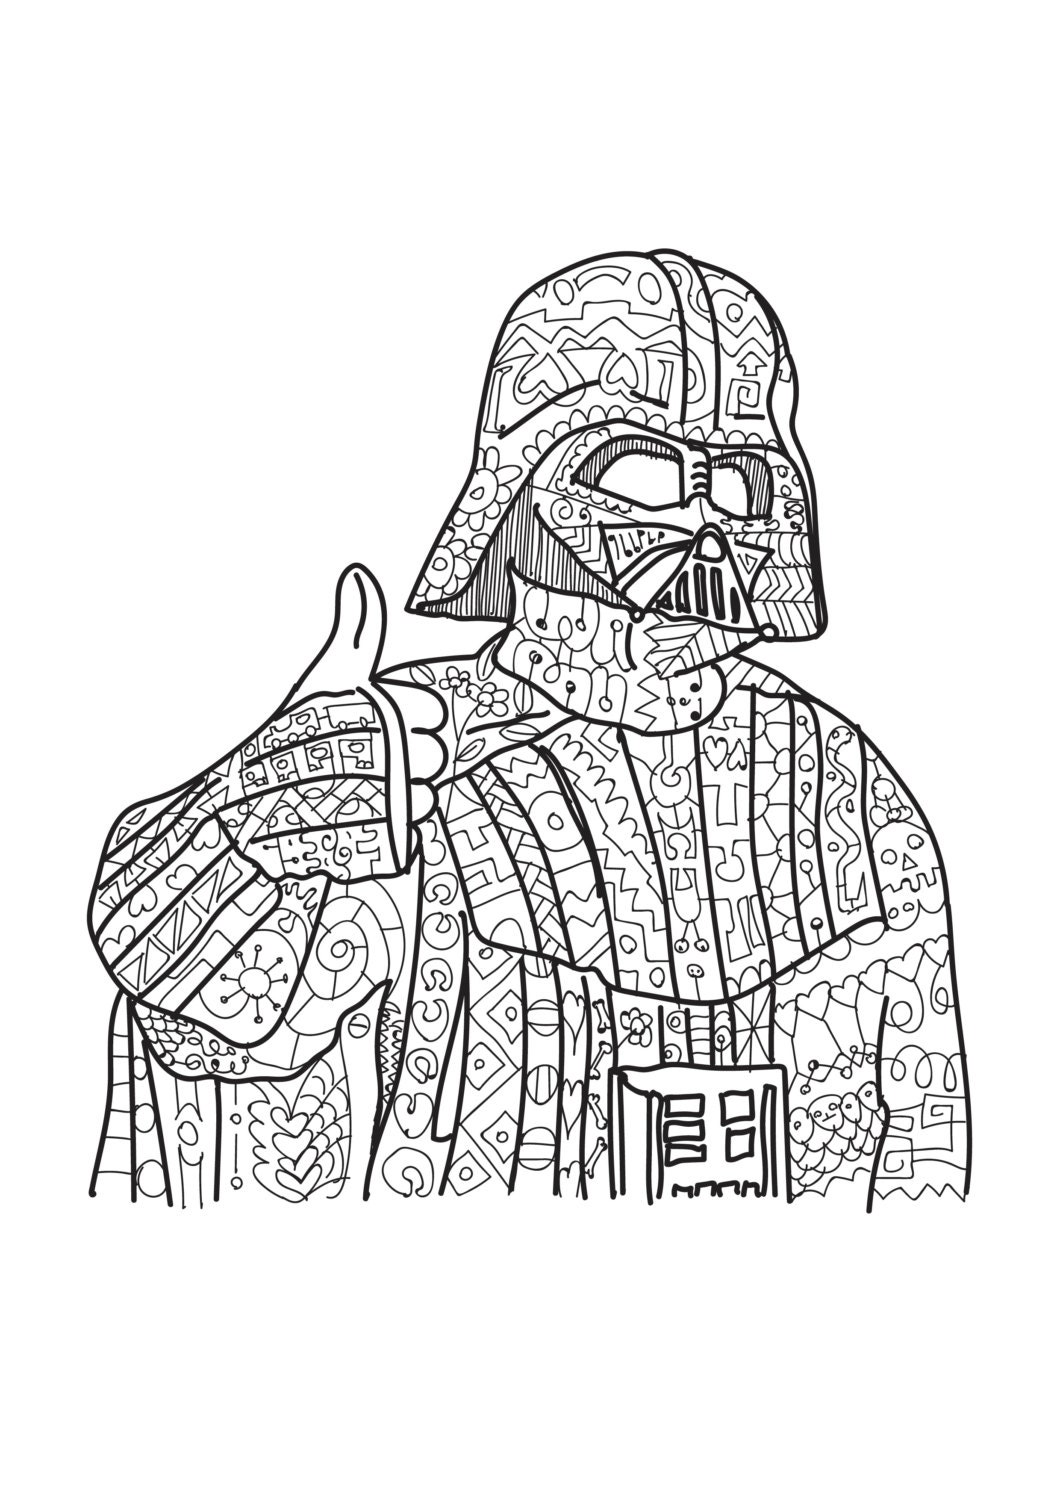 darth vader star wars coloring page adult coloring. Black Bedroom Furniture Sets. Home Design Ideas